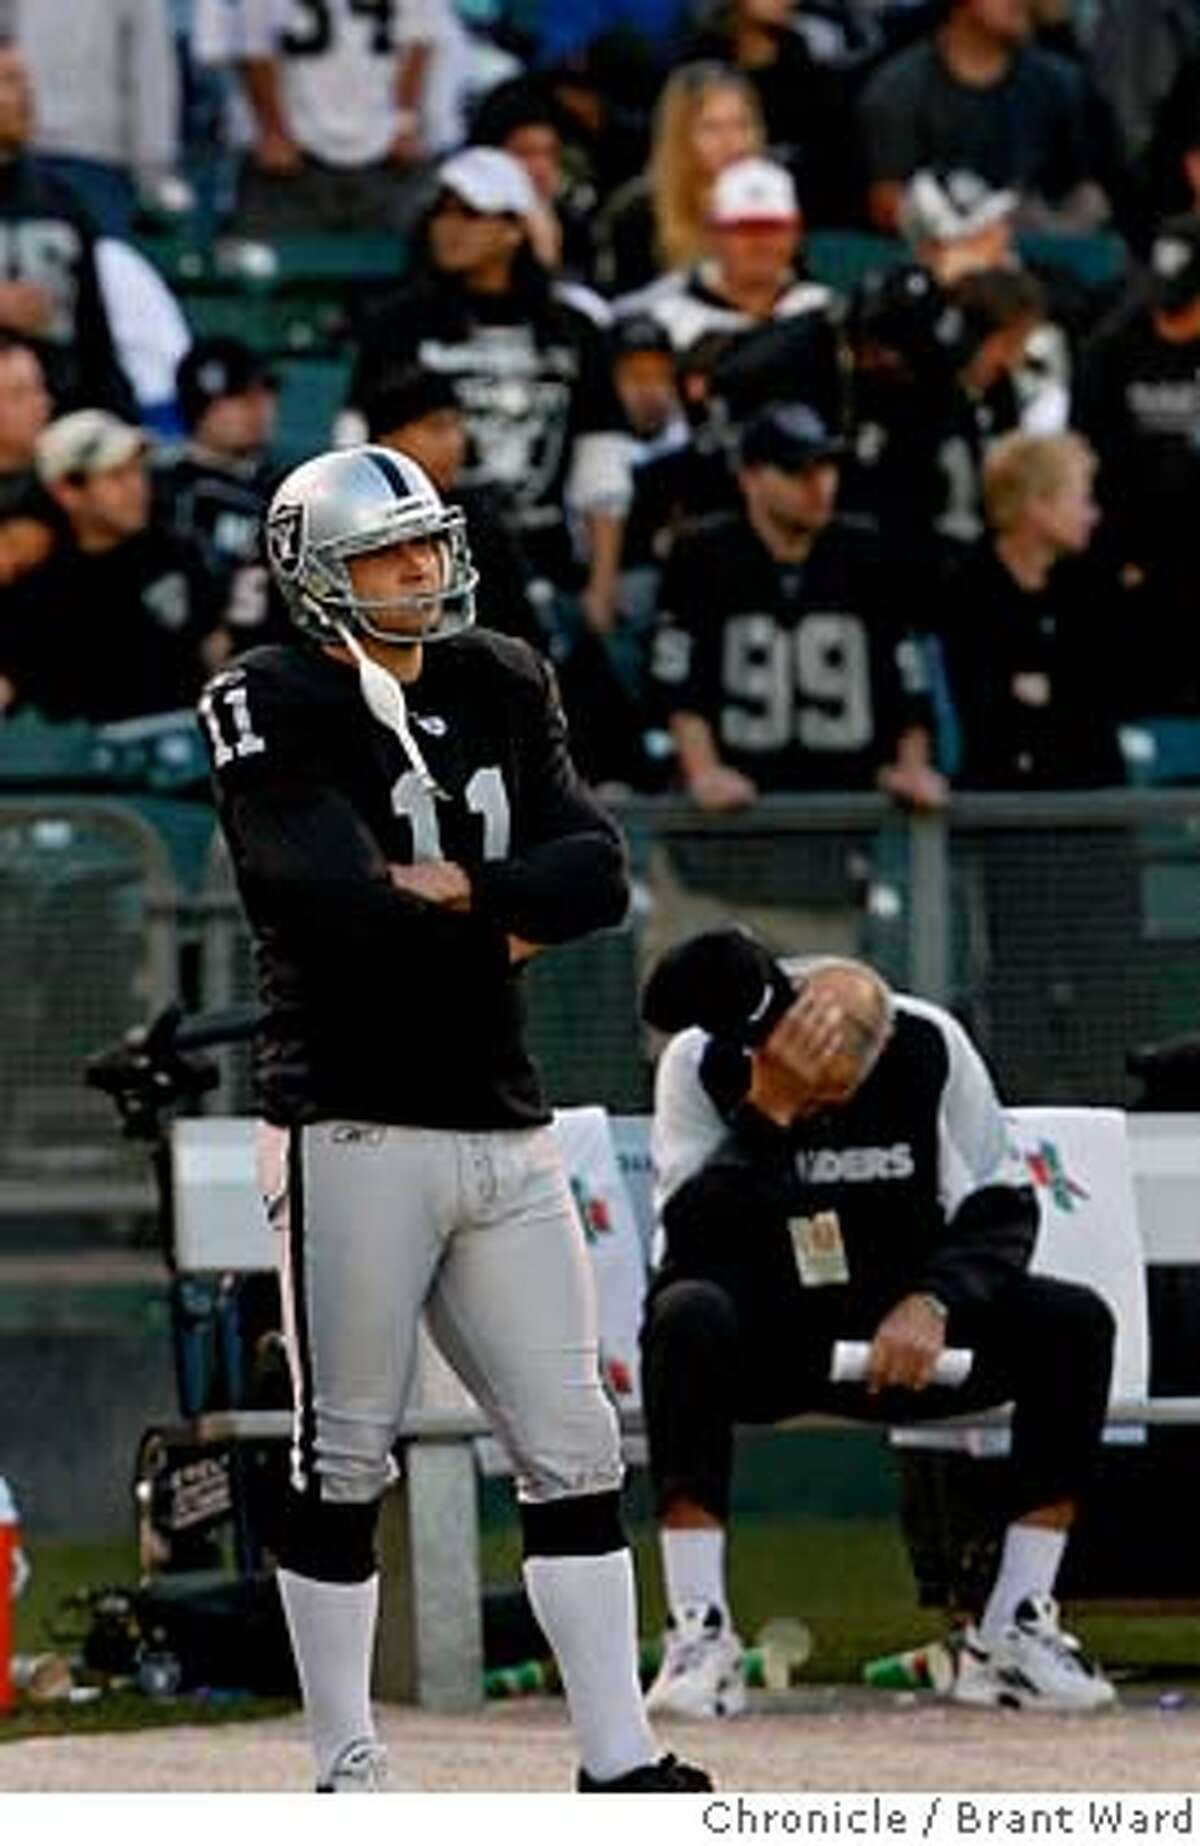 Sebastian Janikowski stood dejected on the sidelines as time ran out on his Raiders. Janikowski had three missed field goals. The Oakland Raiders action vs. Houston Texans at McAfee Coliseum Sunday December 3. The Raiders lost 23-14. {Brant Ward/San Francisco Chronicle}12/3/06